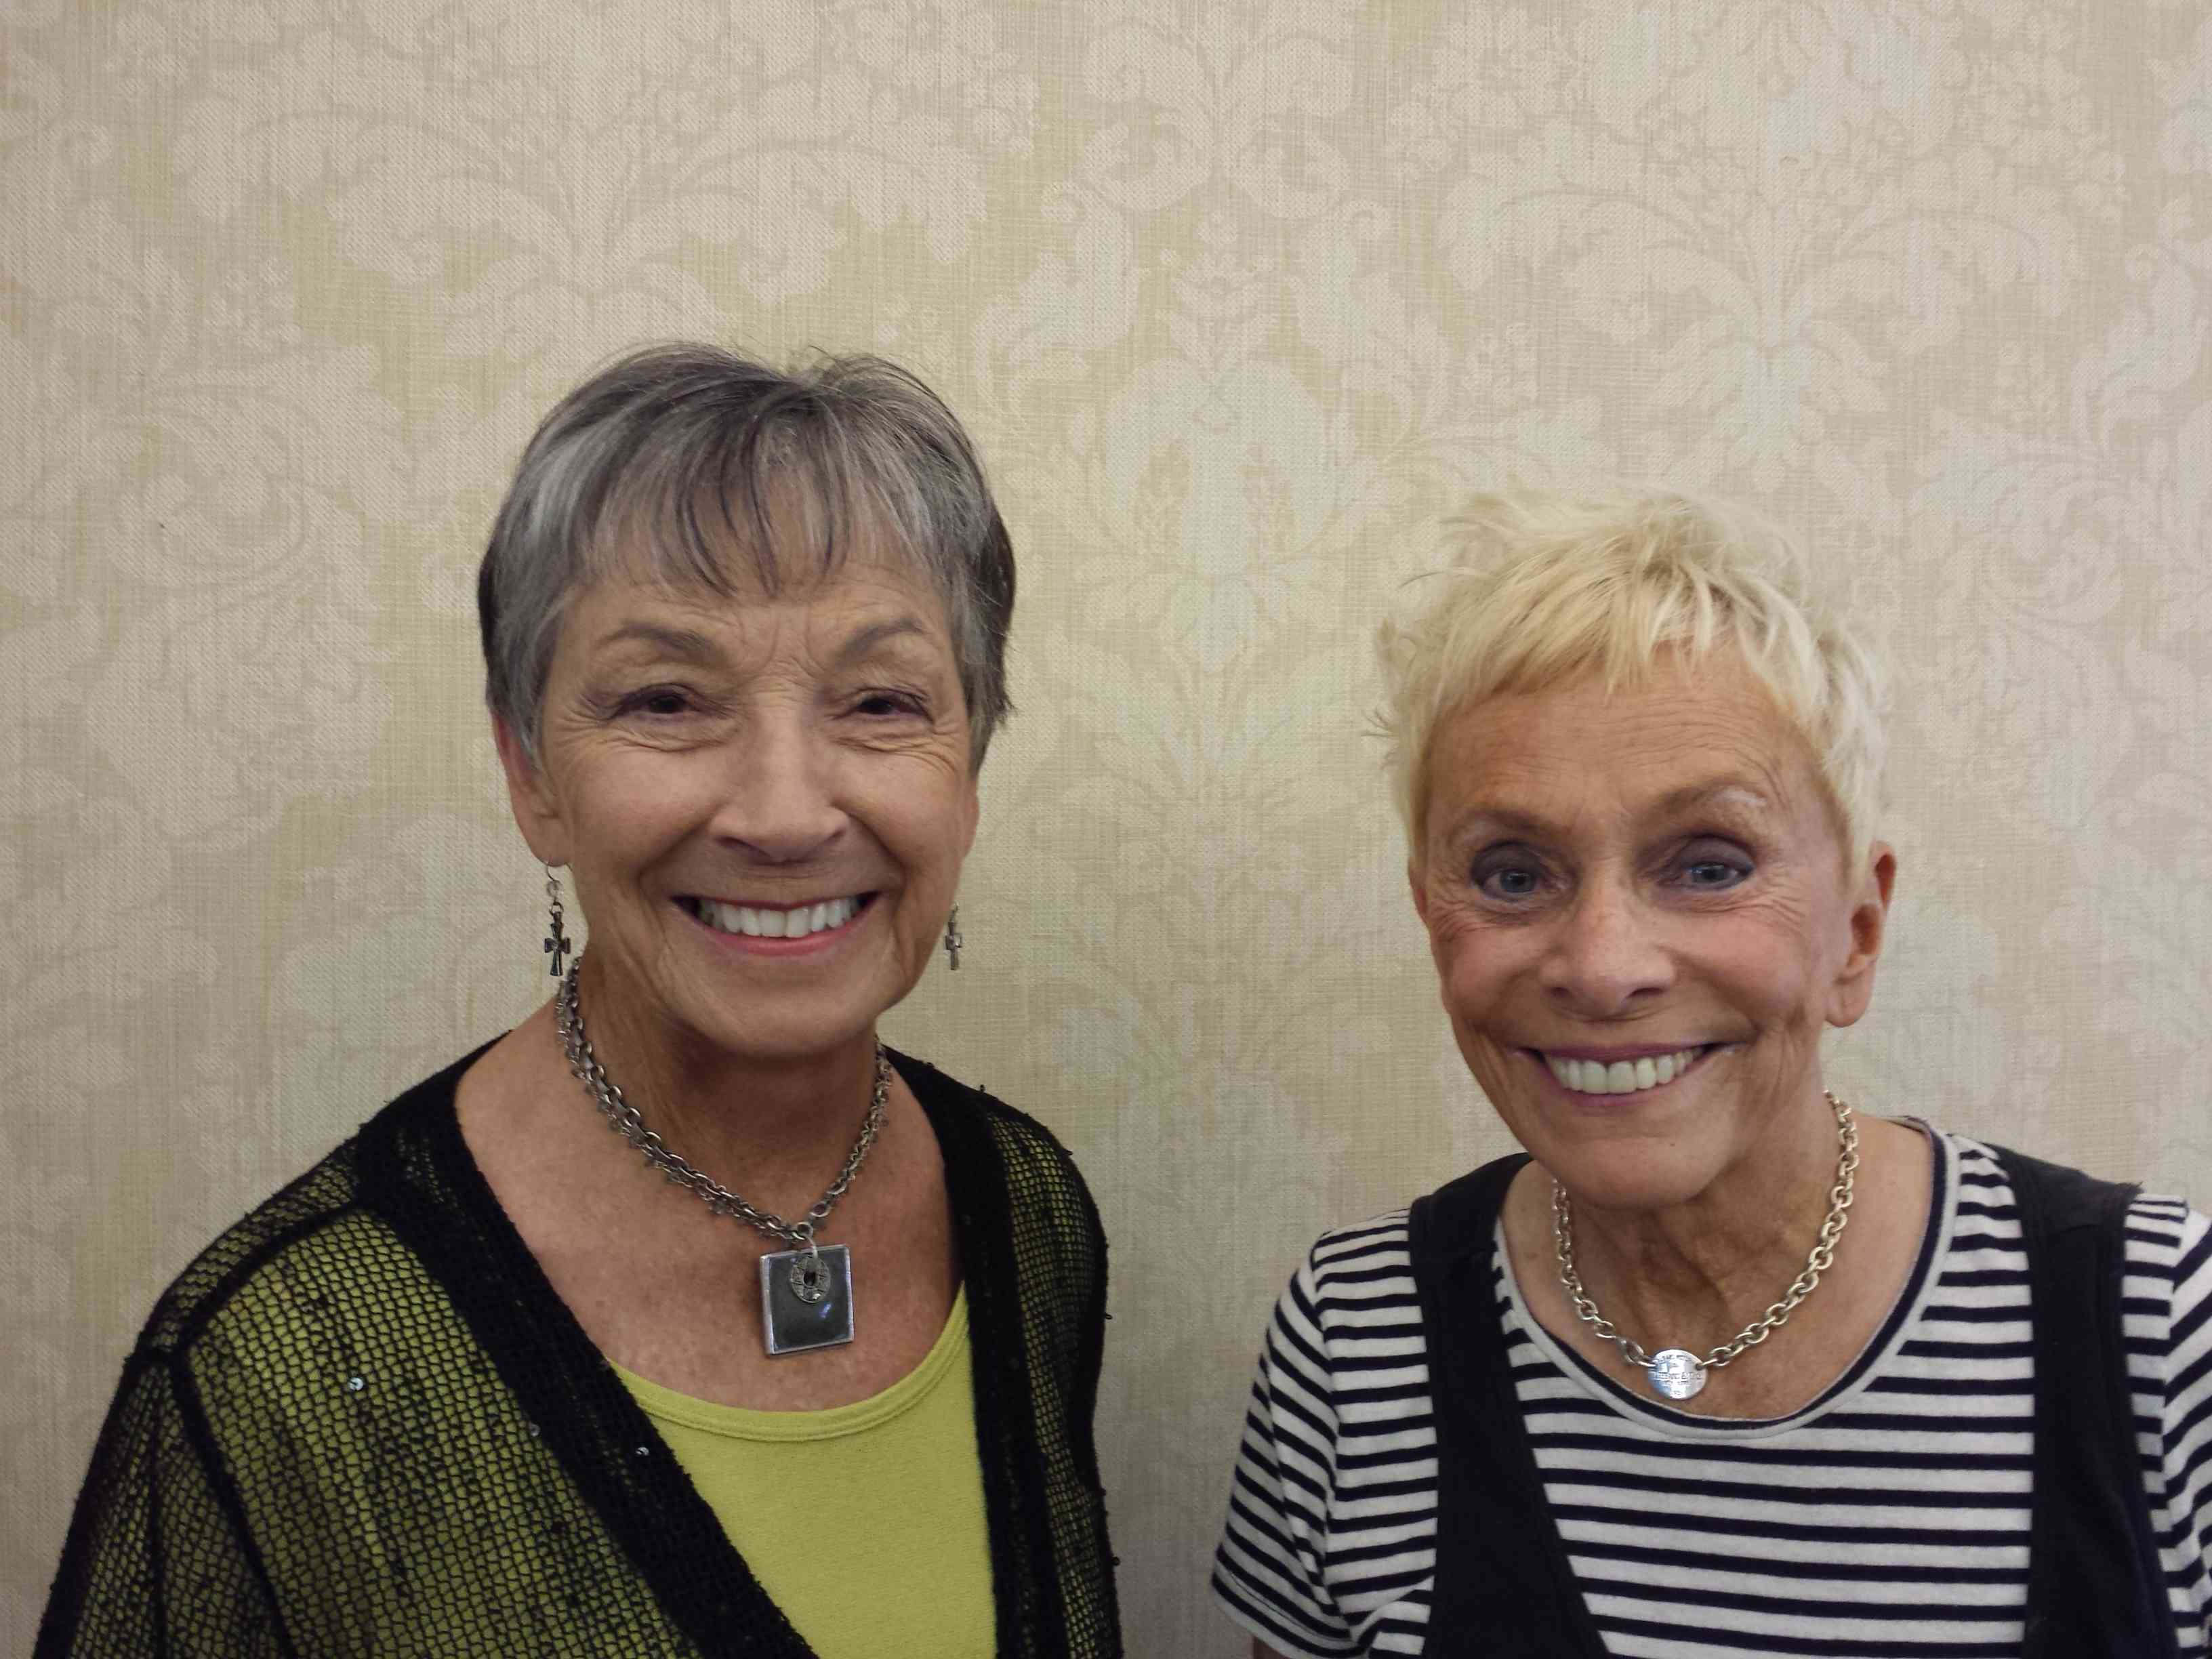 Tues 0-200 AM, Diane Tenney and Patty Dantzscher, Sun Lakes, AZ